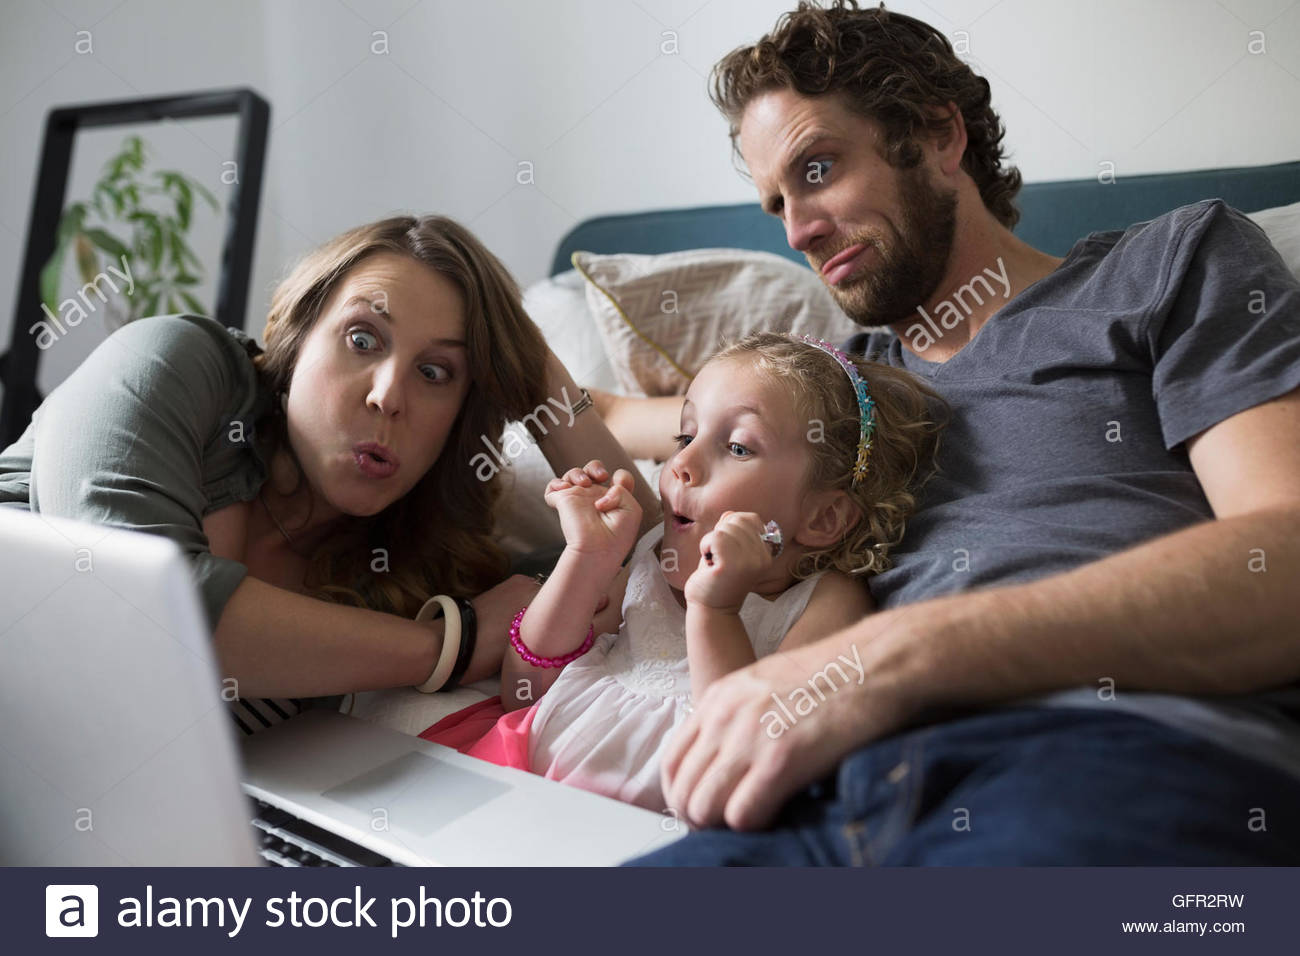 Young family making faces video chatting with laptop on bed - Stock Image